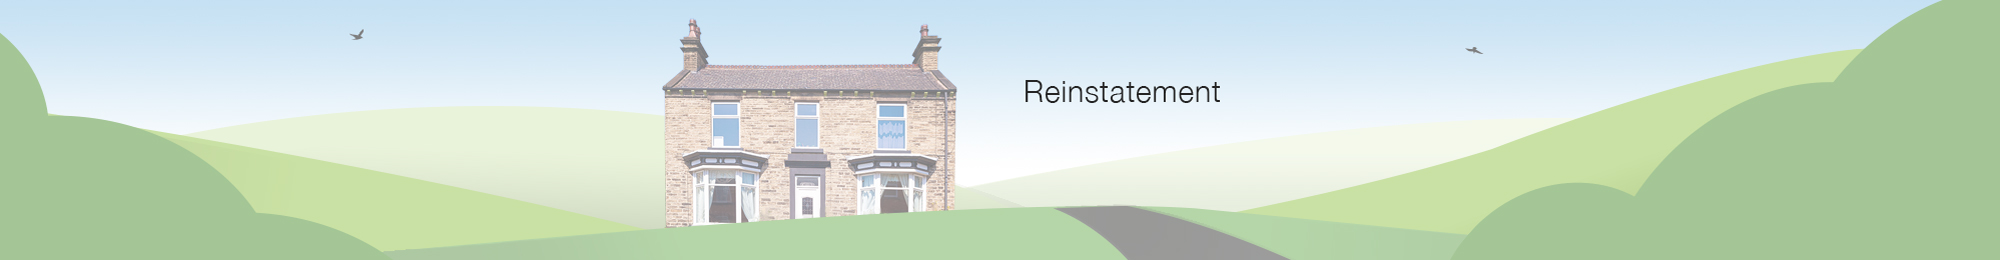 image of reinstatement services